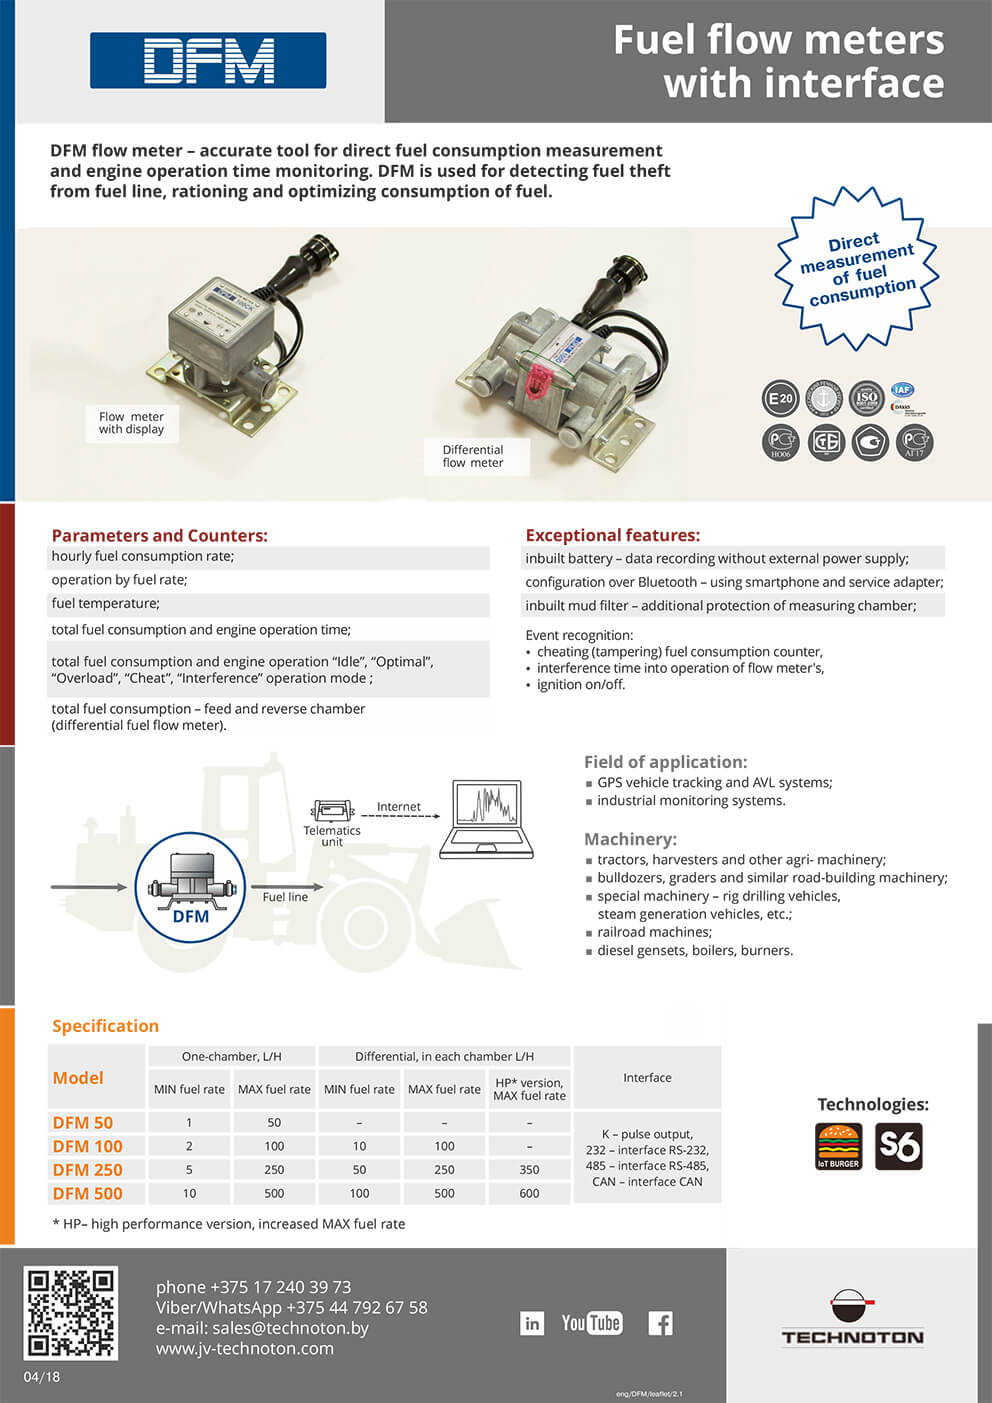 Fuel flow meters with interface